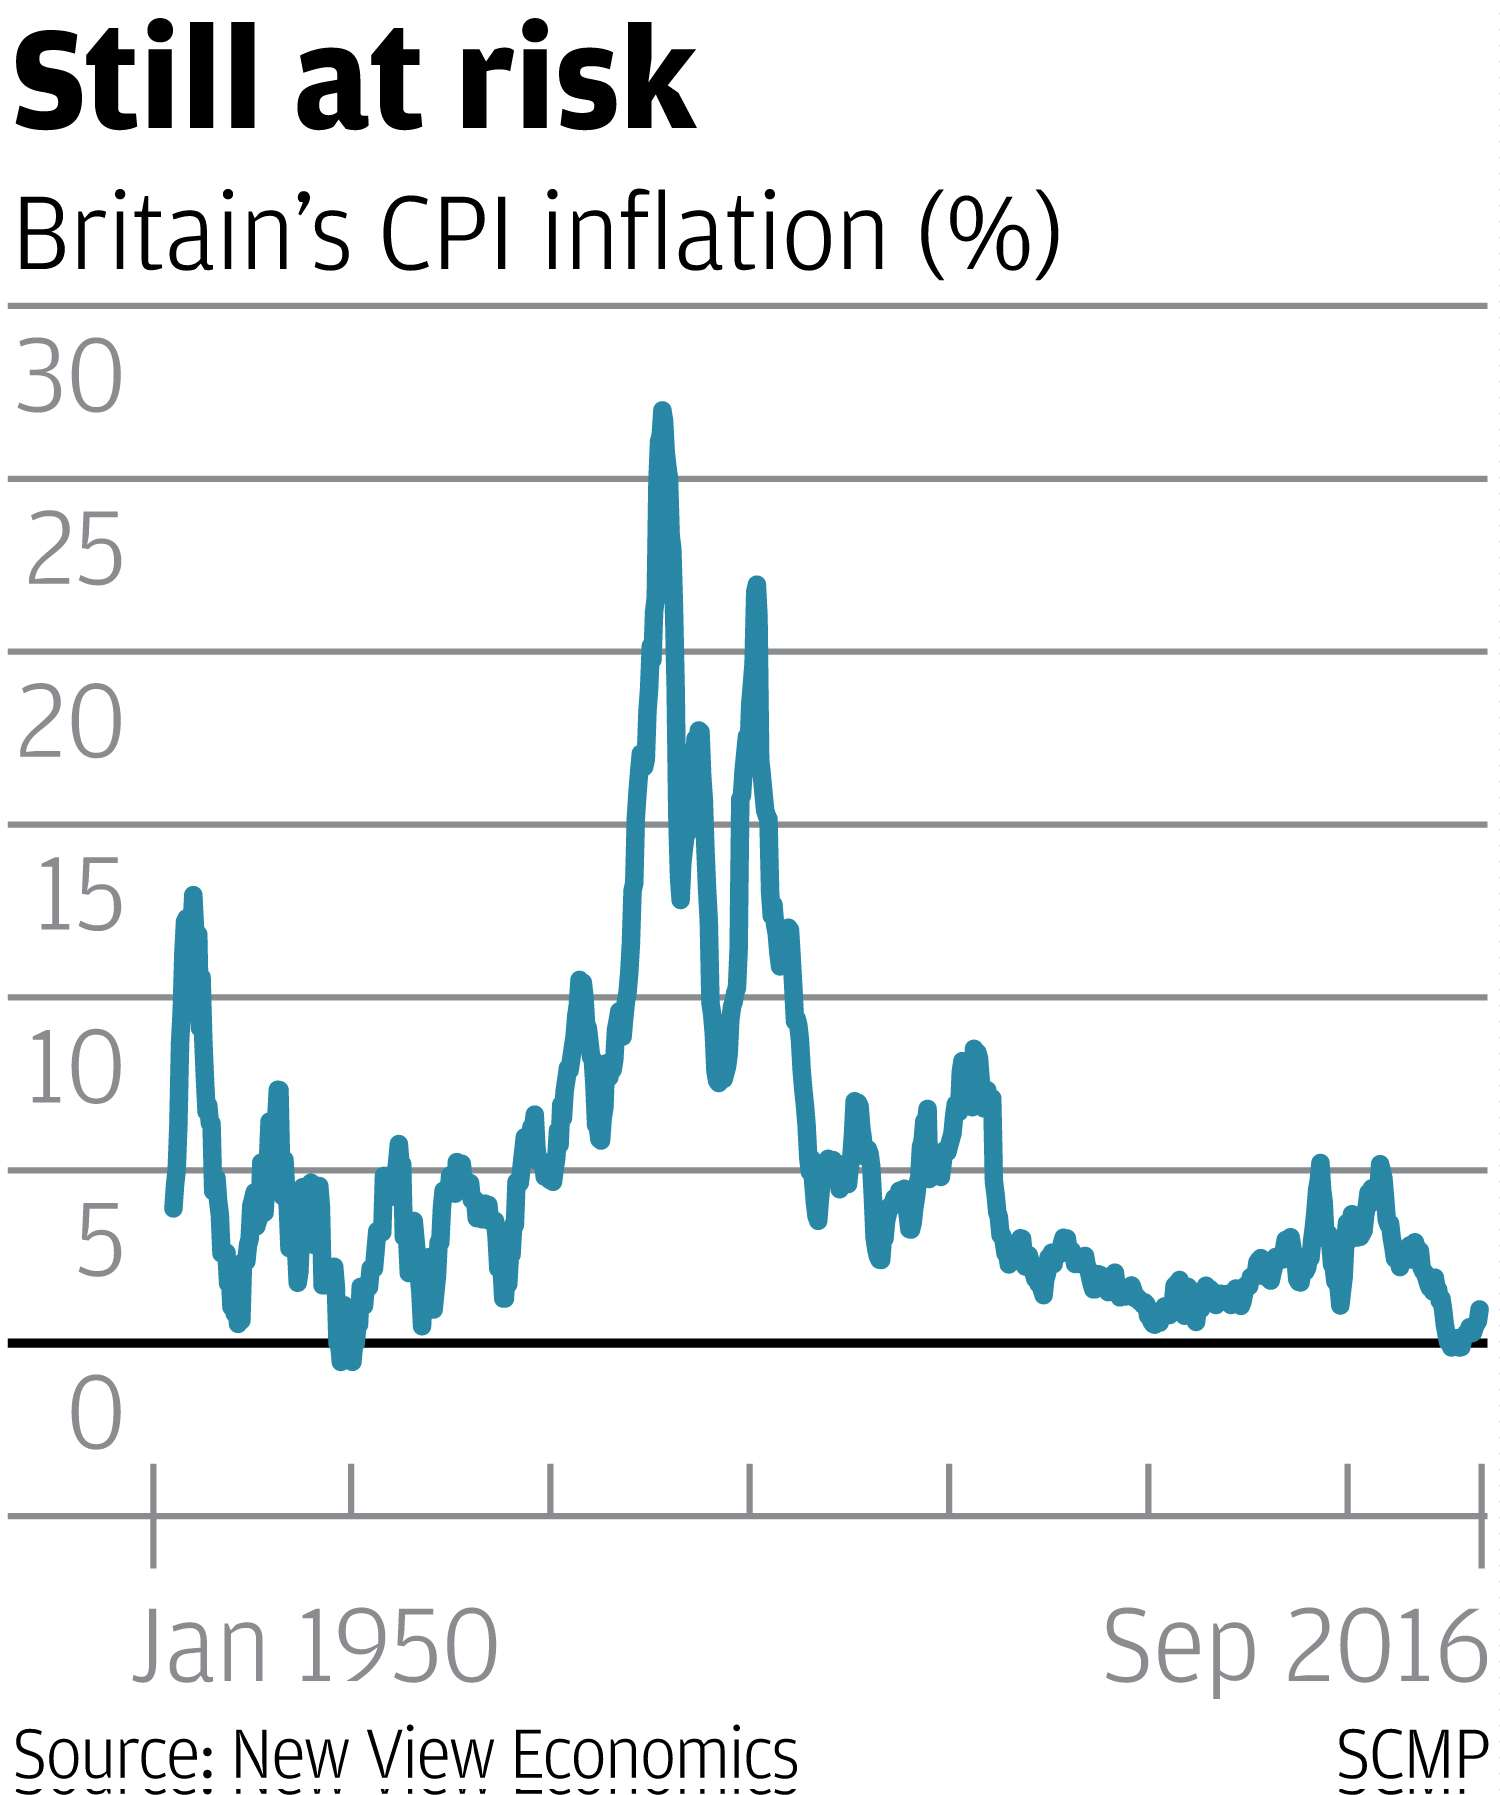 The spectre of stagflation could return to haunt britain very soon even through headline inflation will probably be breaking the boes 2 per cent target in early 2017 and possibly tracking up to 3 per cent next year pooptronica